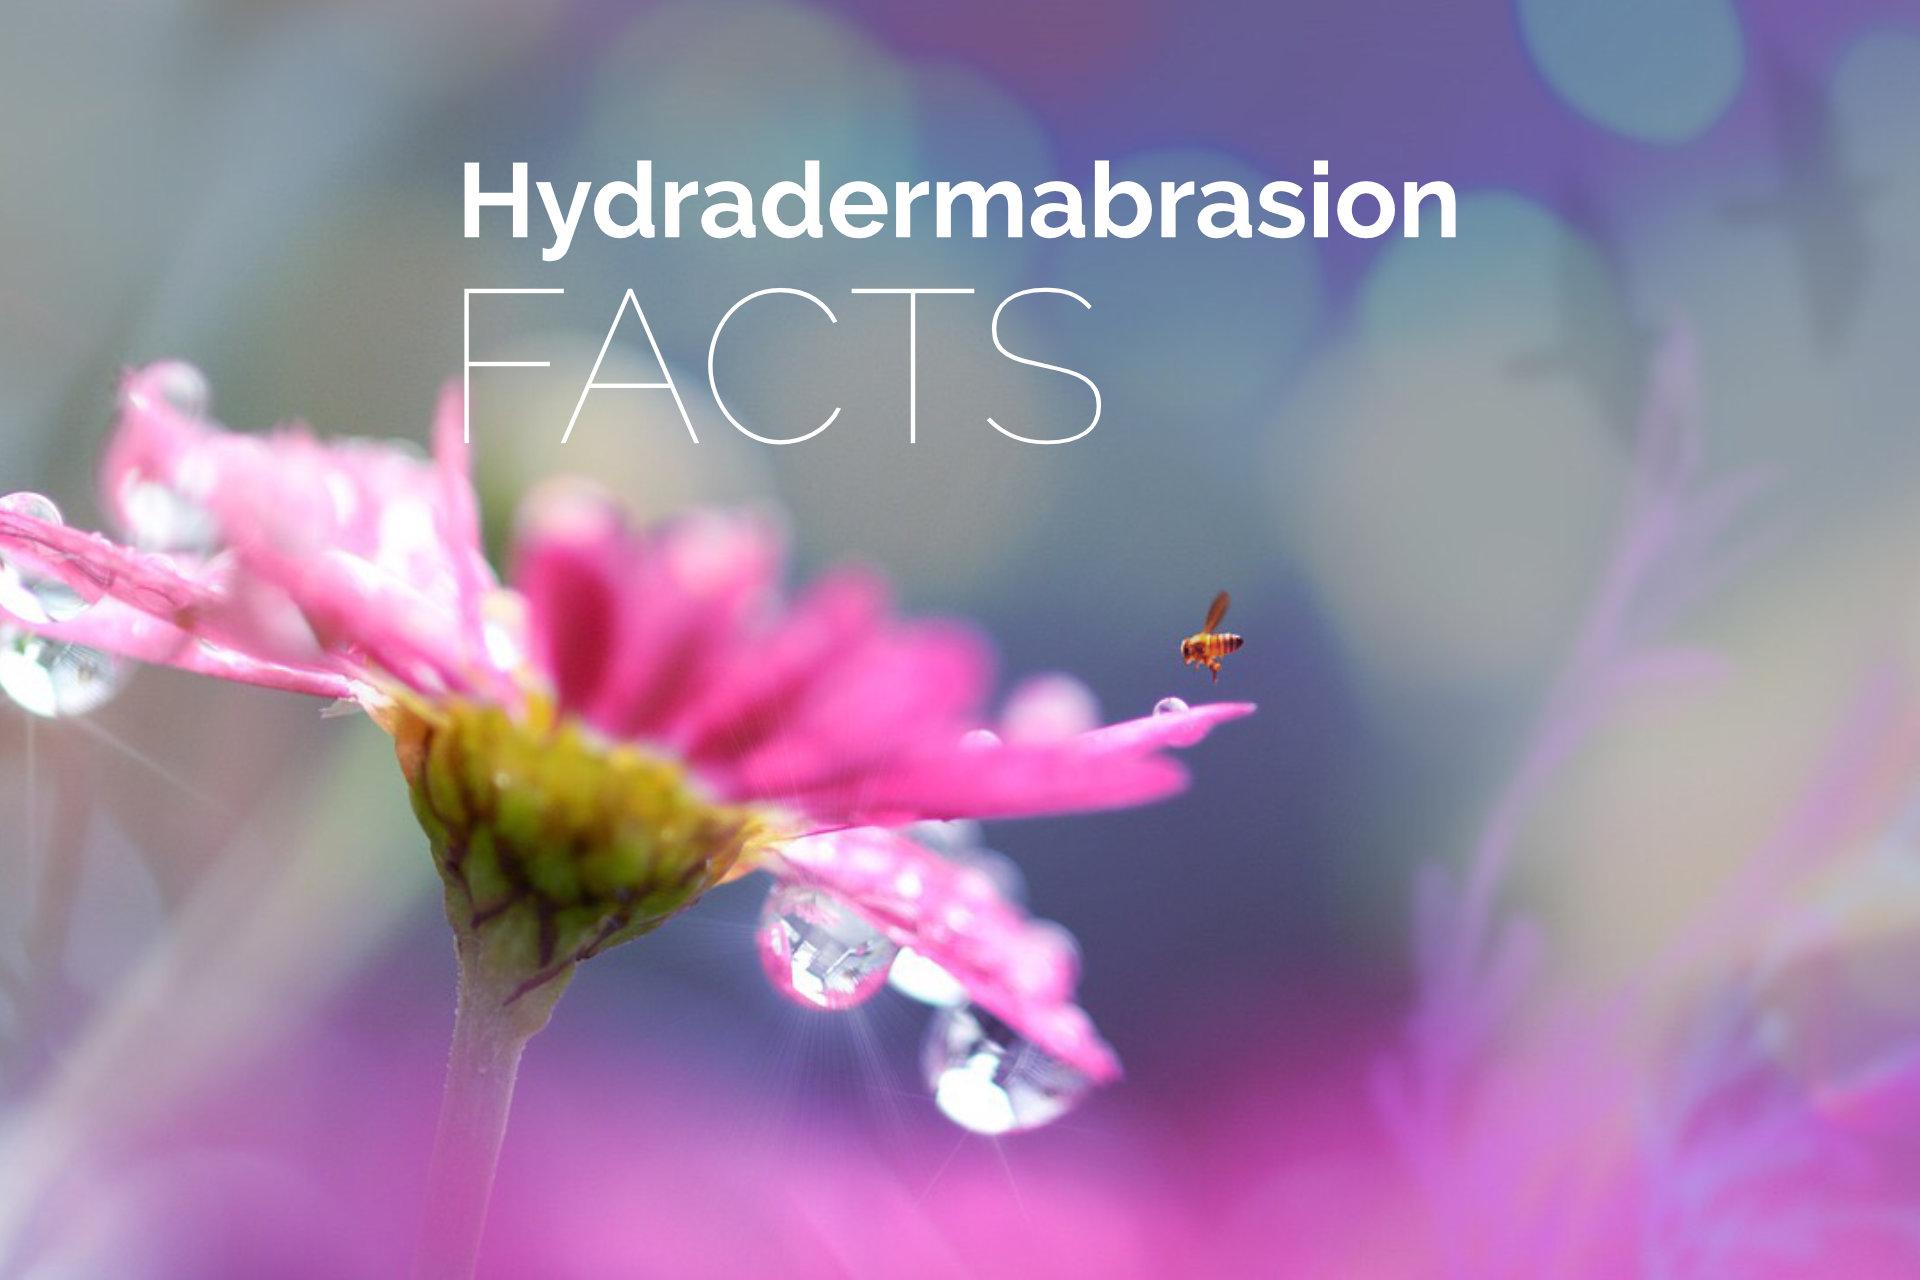 Six Signature Steps For Hydradermabrasion